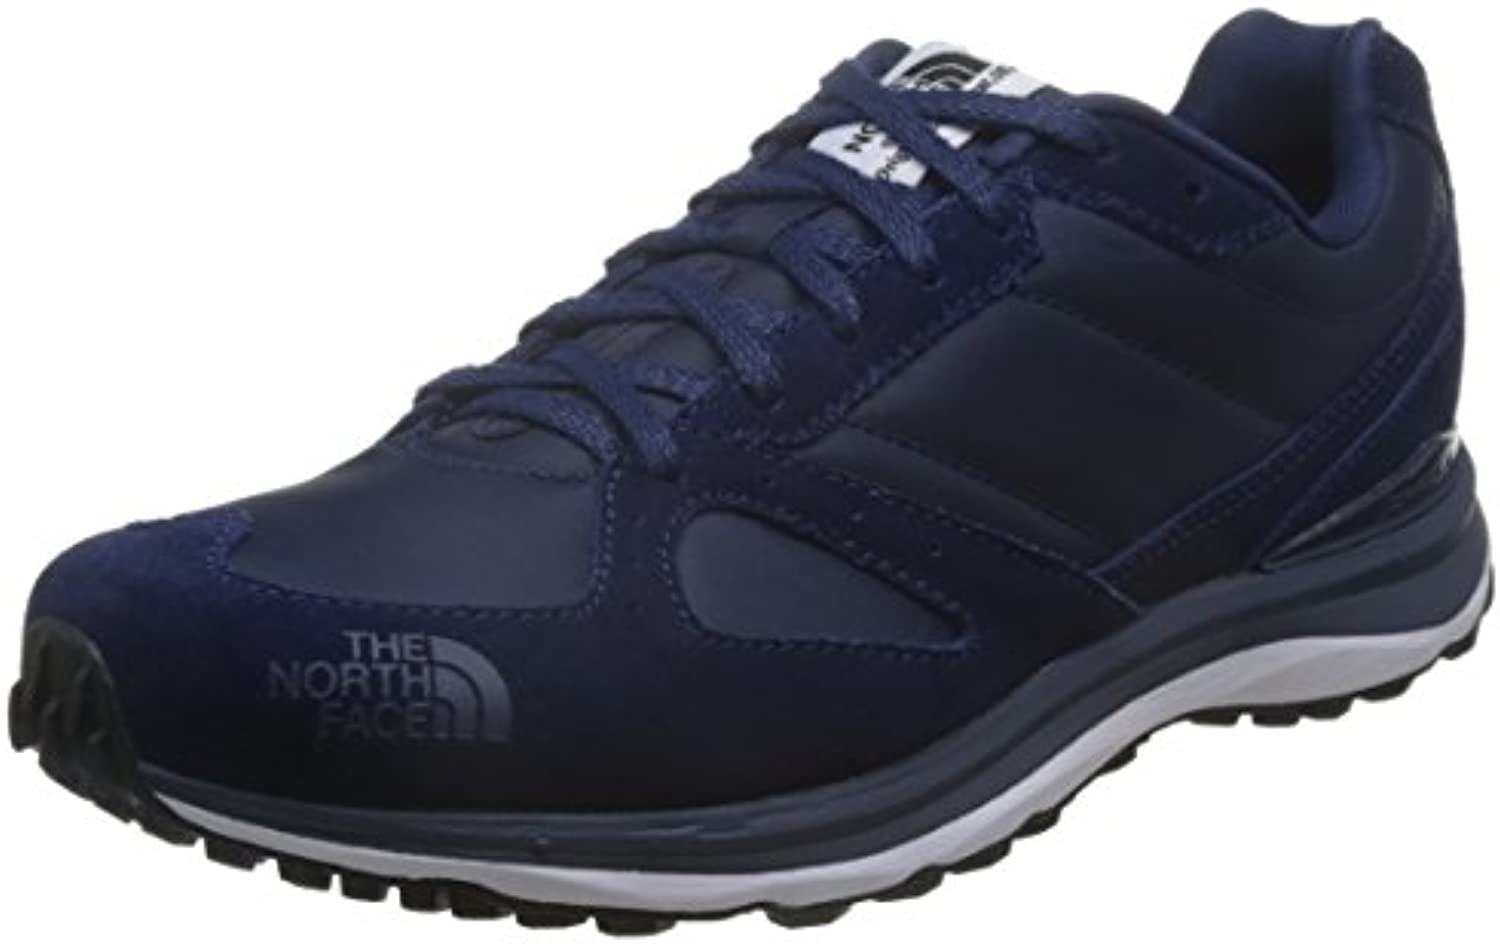 The North Face Traverse TR Hombre Zapatos de Nailon Azul 2017